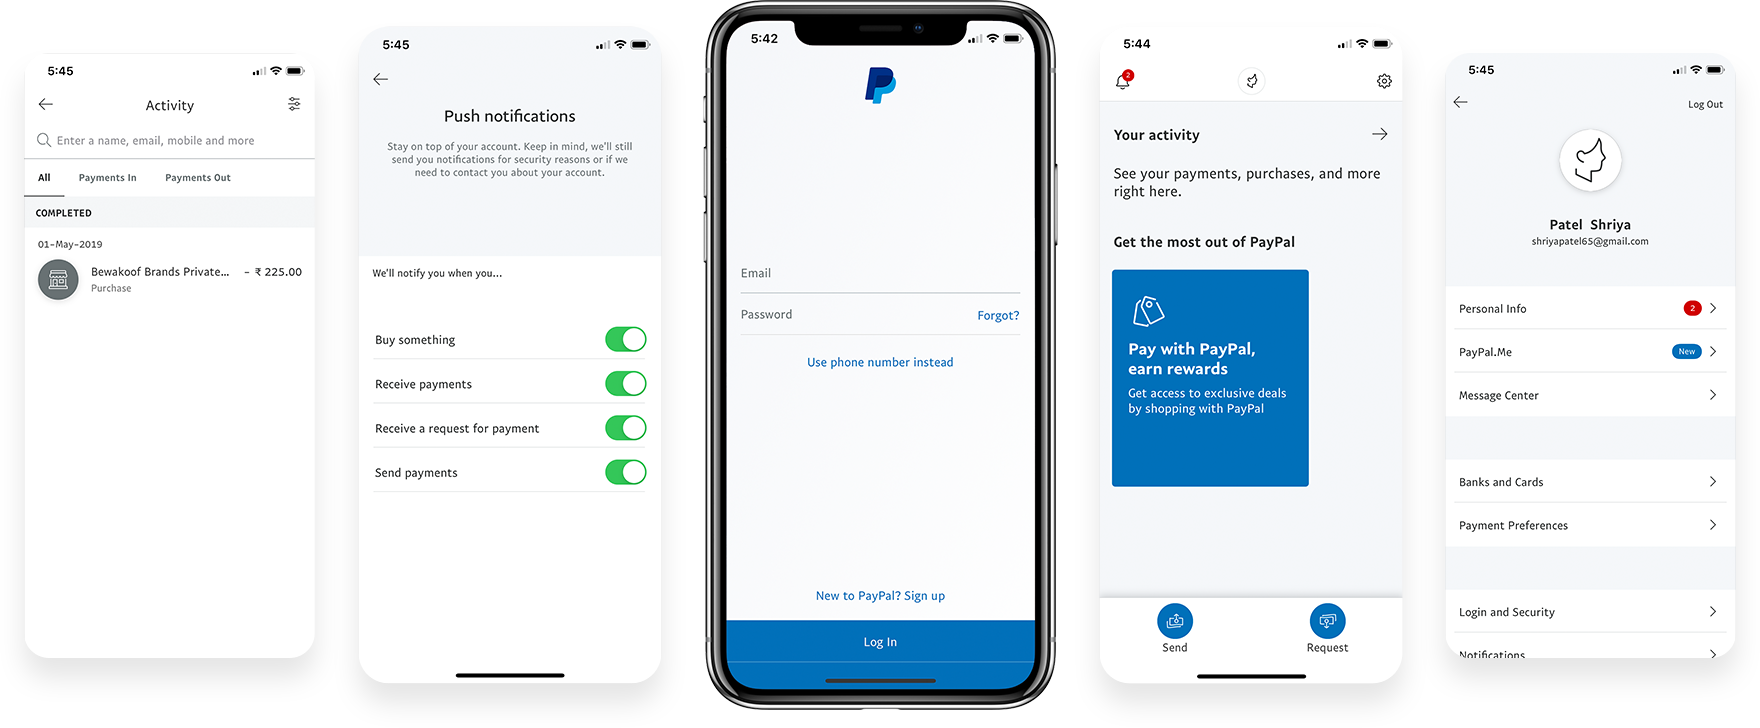 Best PayPal App Screenshots